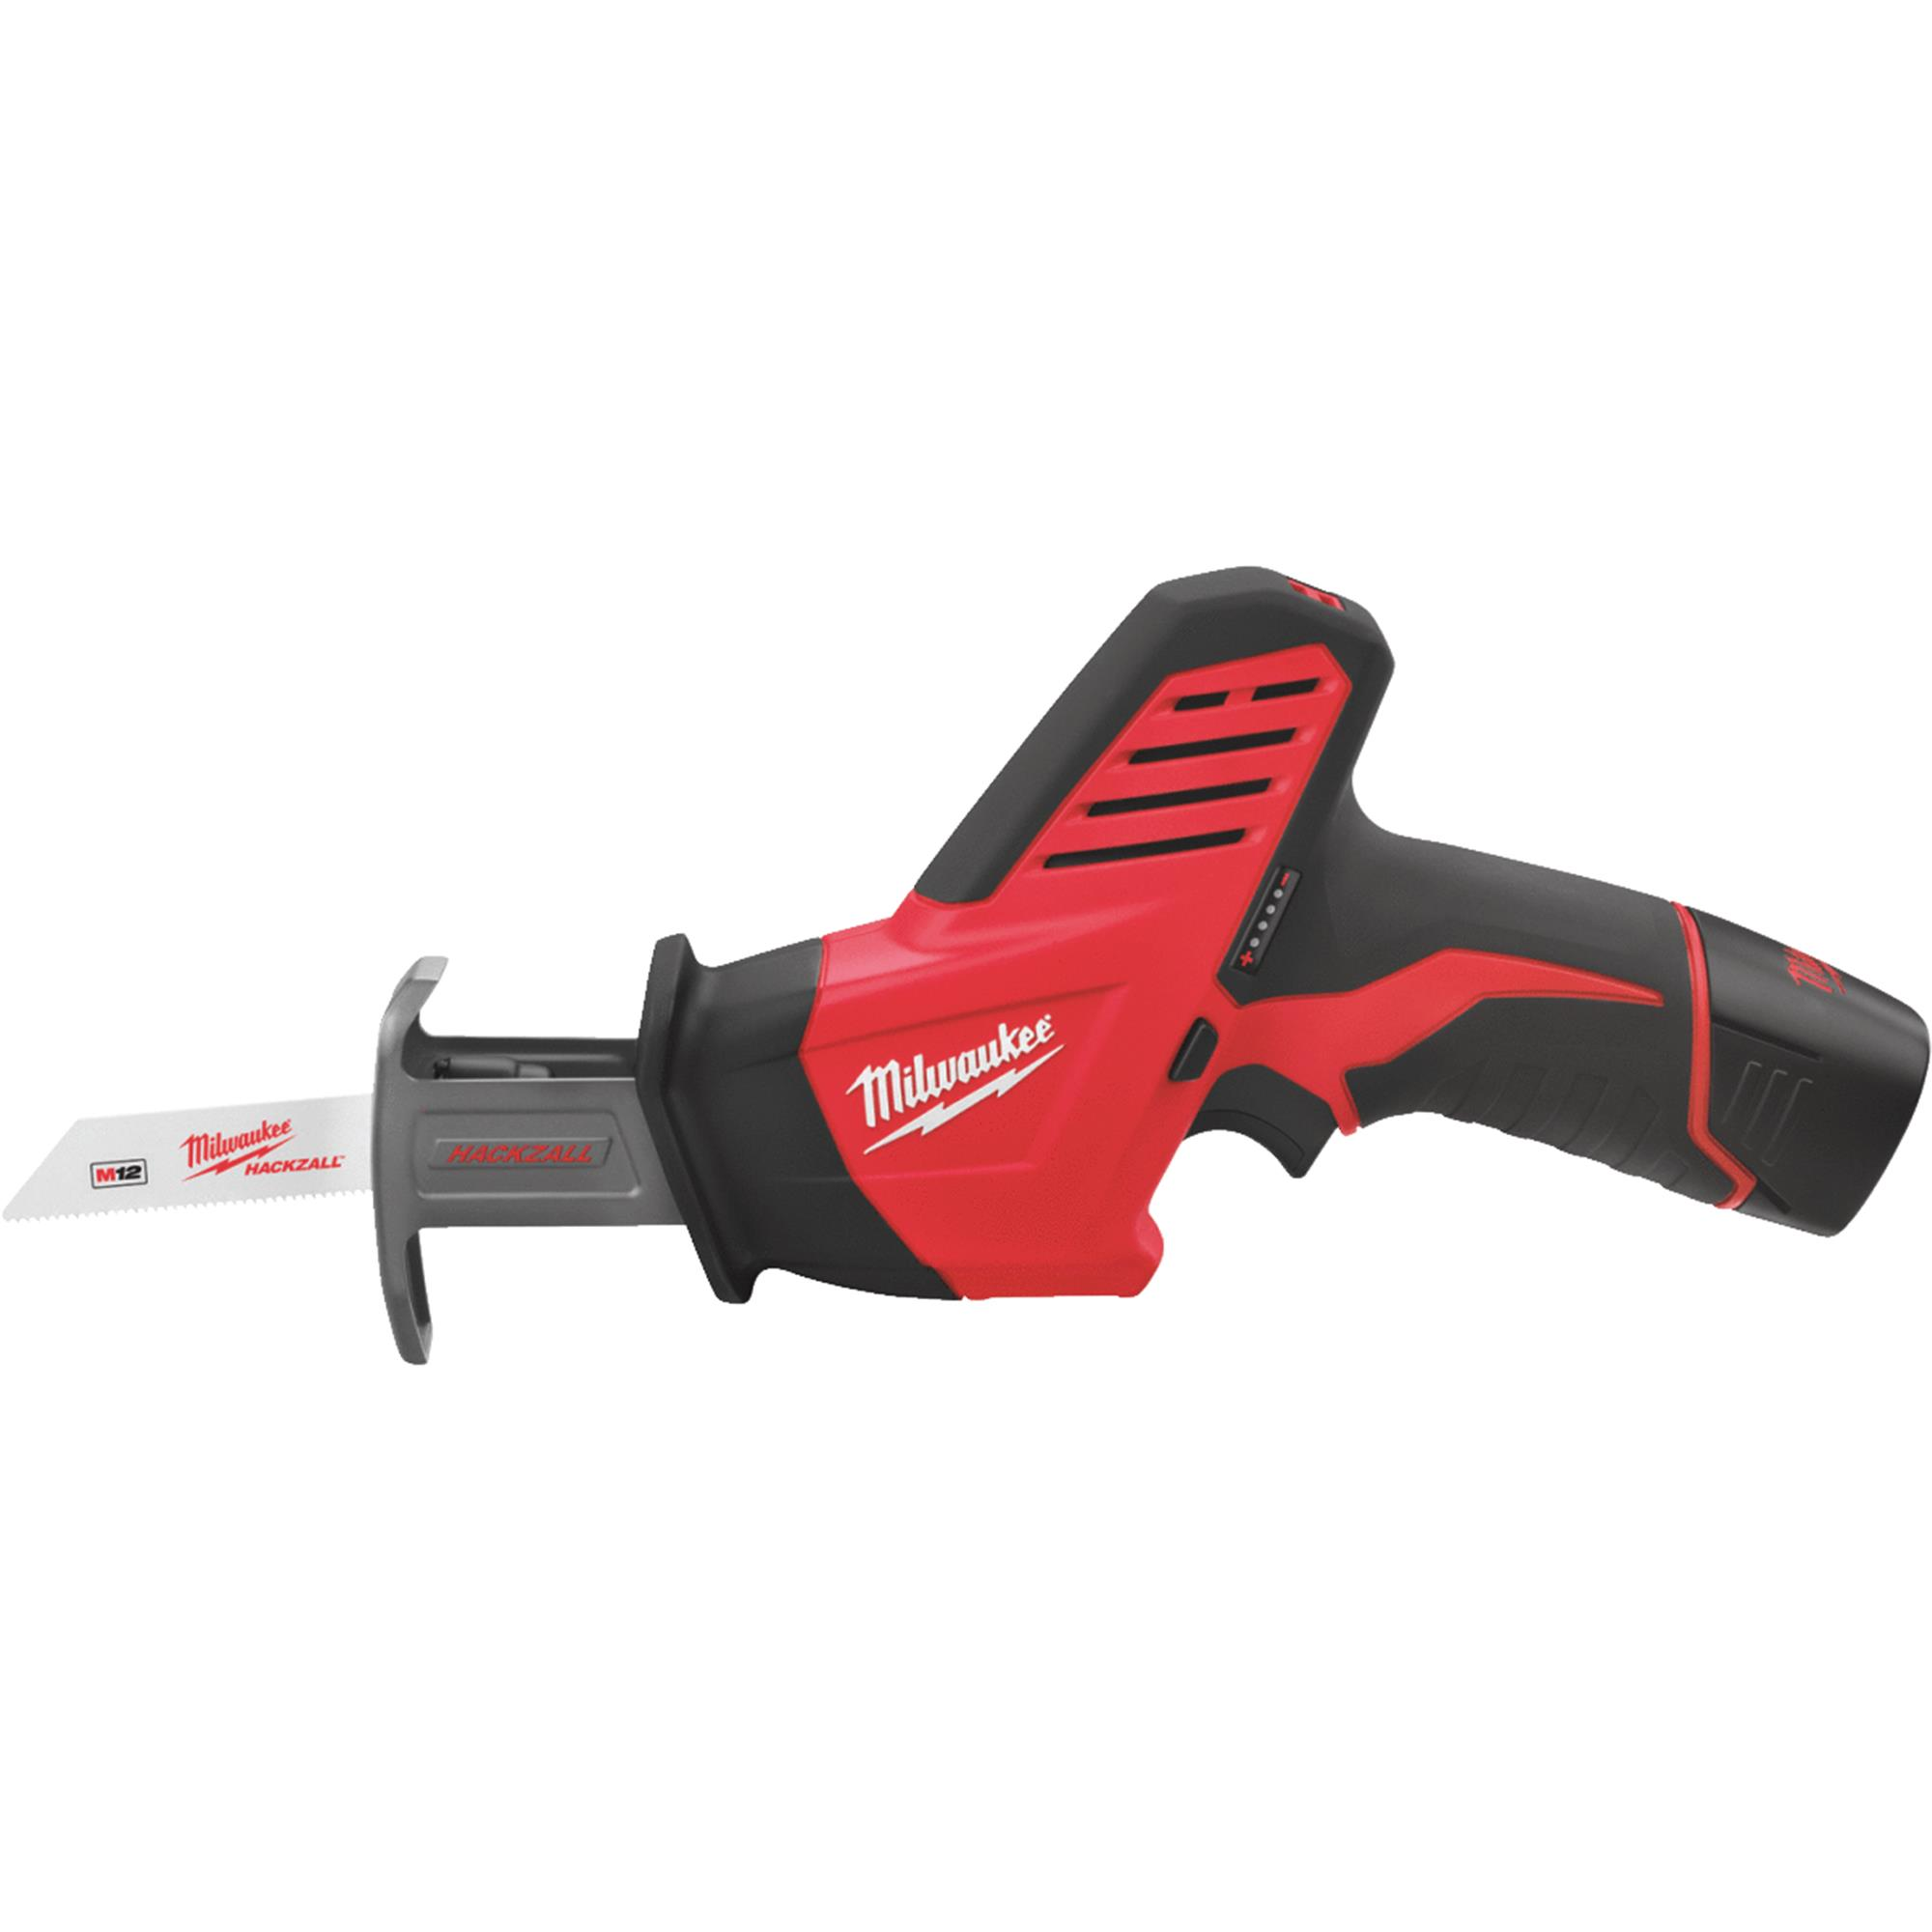 Milwaukee Hackzall M12 Lithium-Ion Cordless Reciprocating Saw Kit